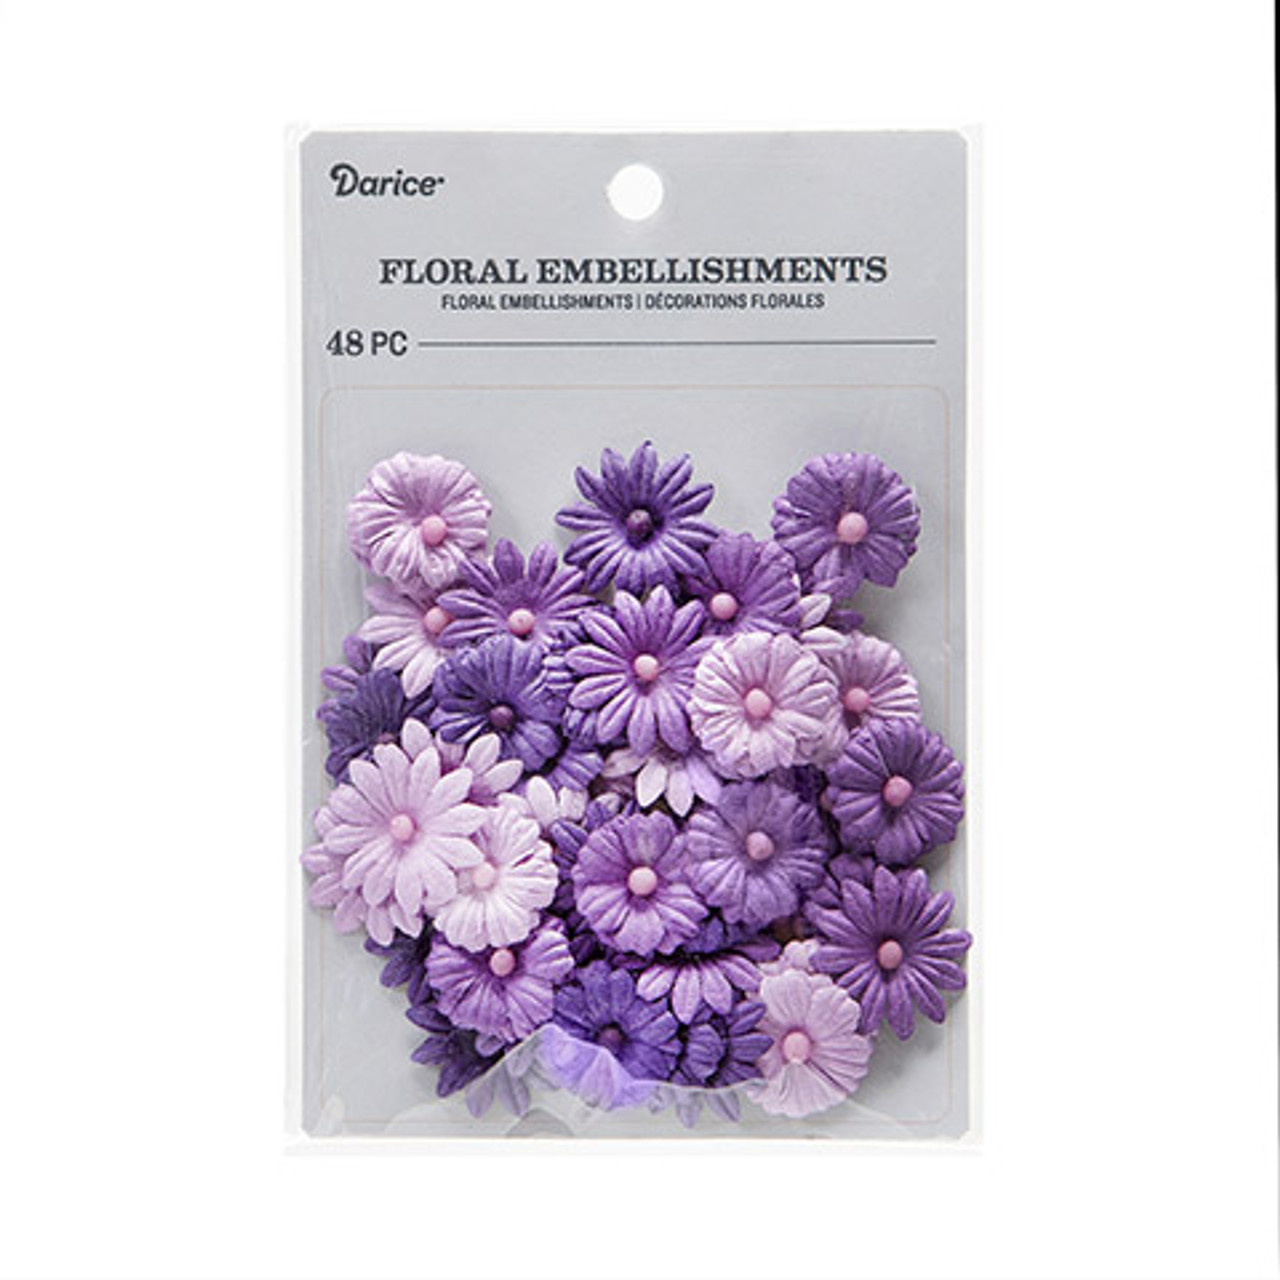 Floral Embellishments Collection Violet Purple Button Daisy .75 inch Blooms Scrapbook Embellishment by Darice - 48 Pieces